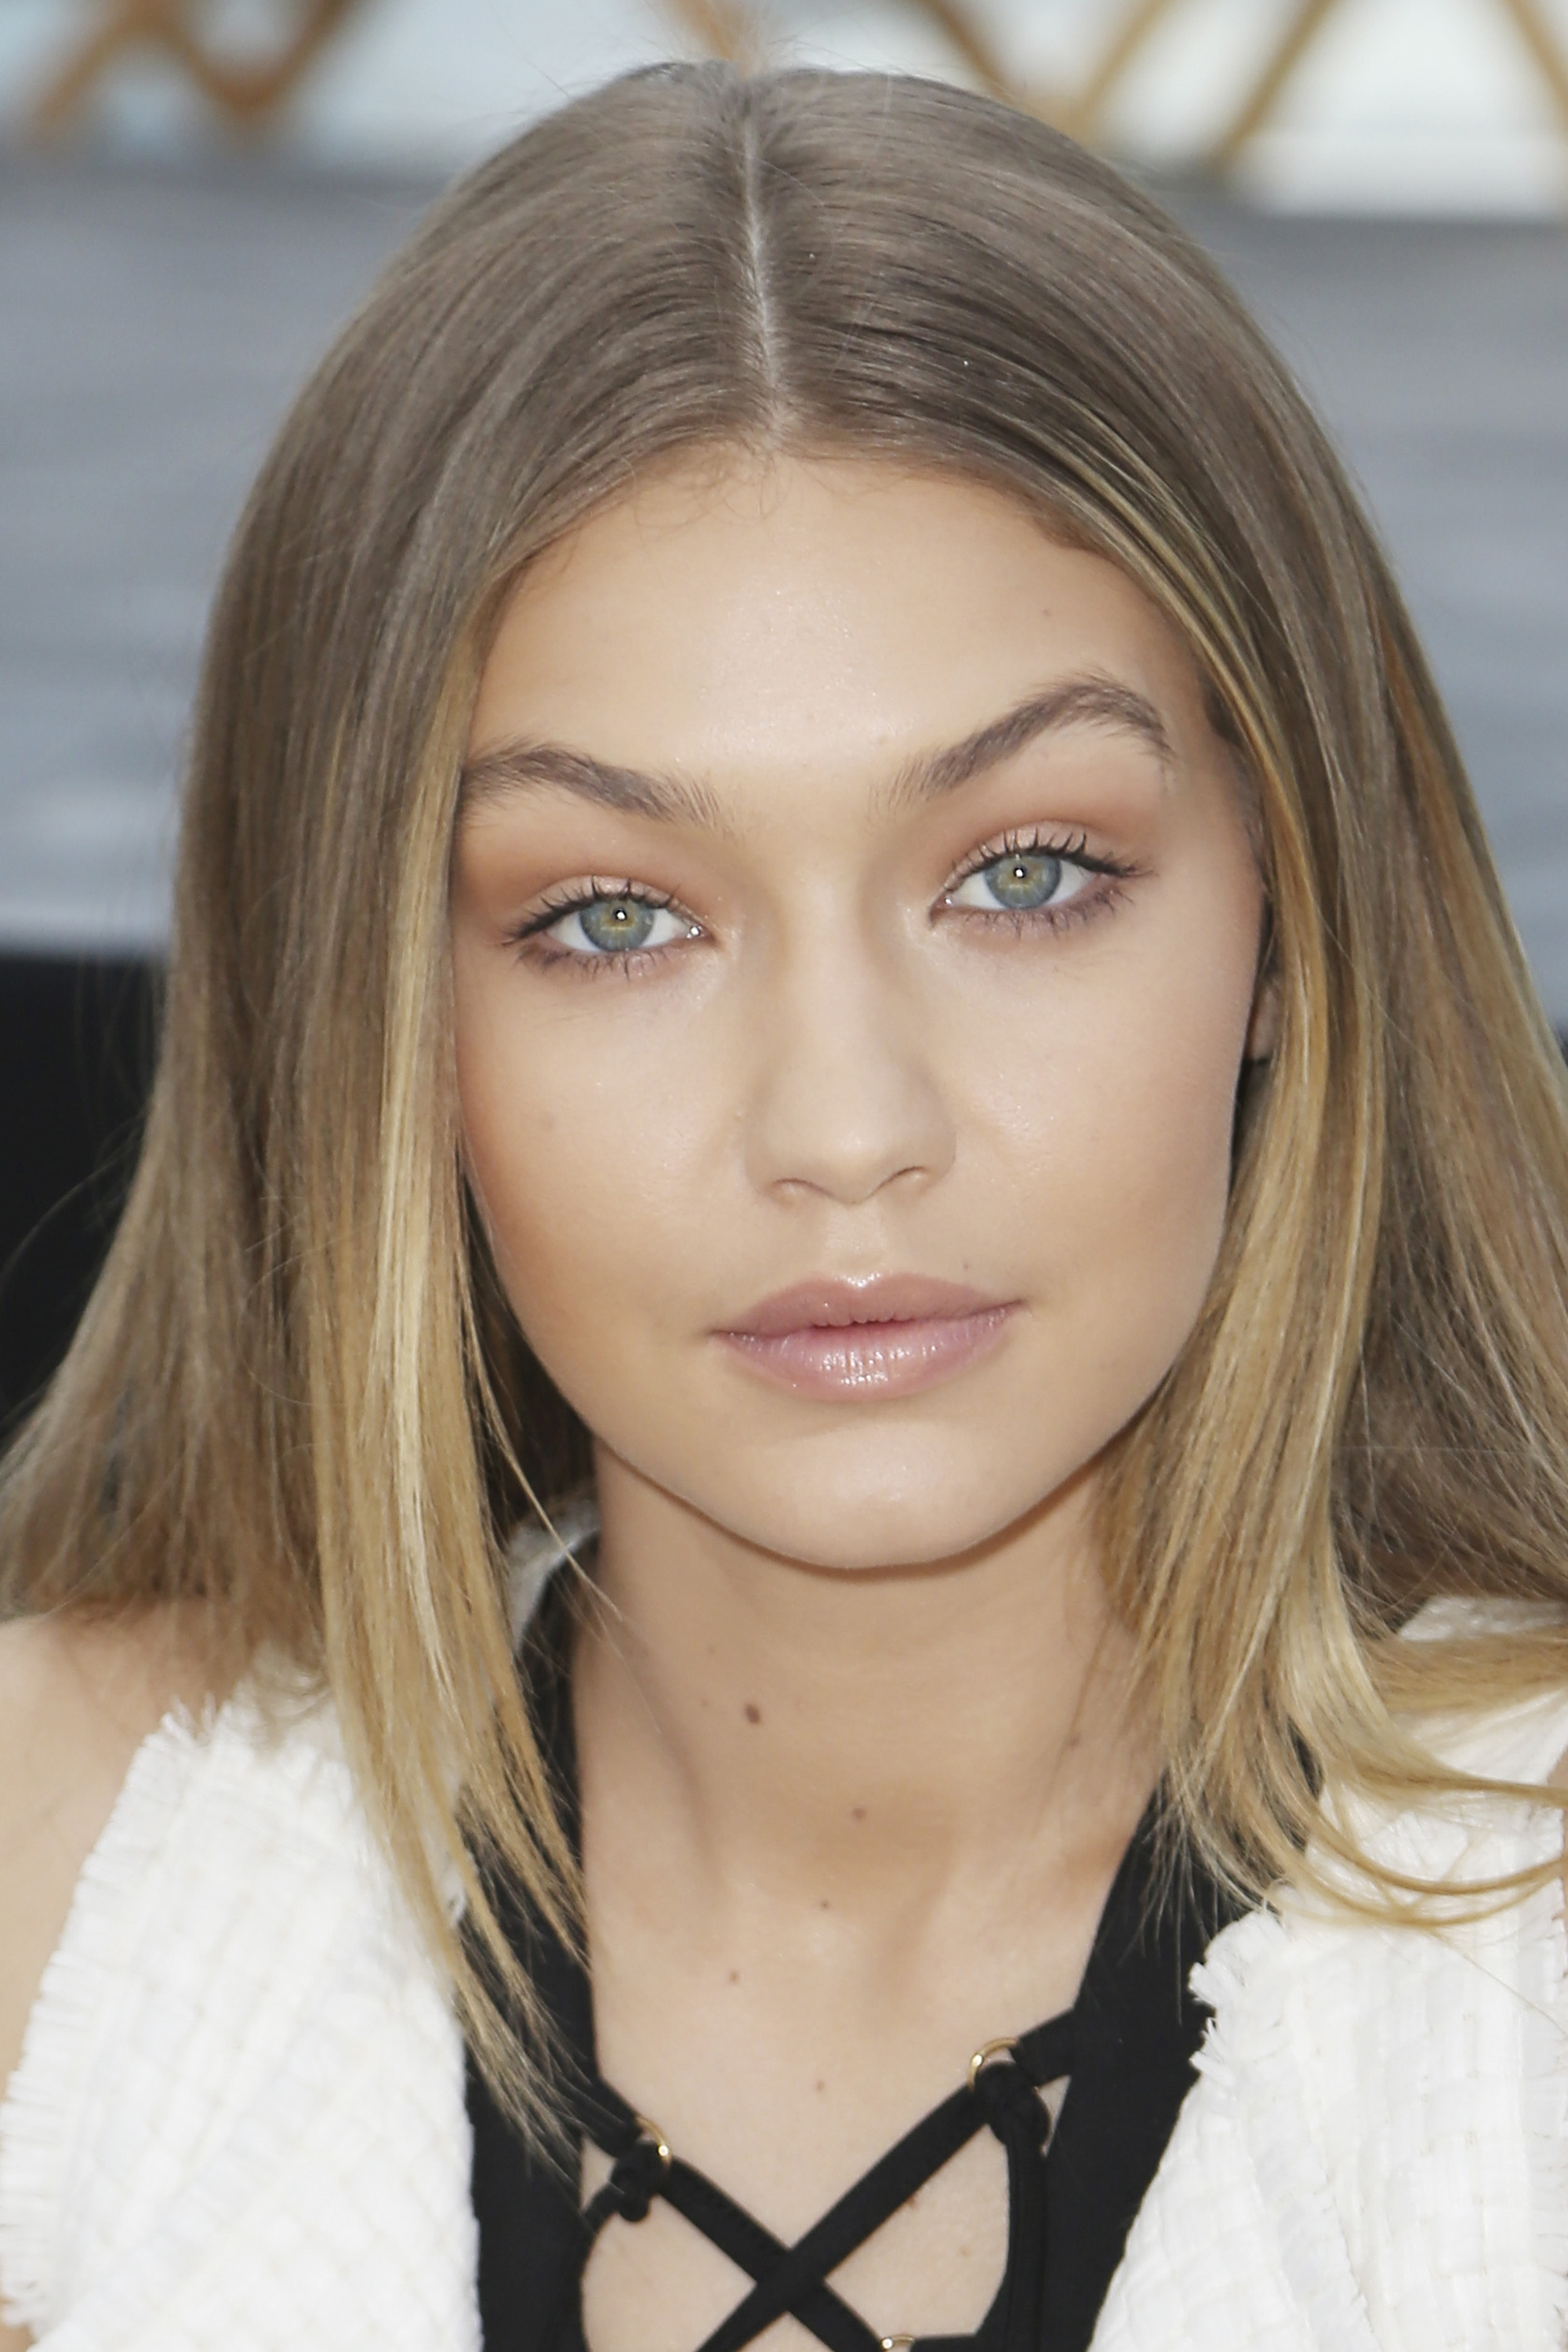 "Over the past couple of years, beauty crazes like contouring, strobing and tontouring have put chiselled cheekbones into the limelight. So for anyone who hasn't mastered the art of sculpting, it's a relief to see the likes of Gigi Hadid and Selena Gomez being embraced by fashion, apple-cheeked grin and all. <br><br>These baby-faced girls herald a new wave of beauty that's far from angular, and, in even better news, their look is much easier to achieve. Just grab a cream blush (we love <a href=""http://mecca.com.au/stila/convertible-colour/V-001558.html?cgpath=brands-stila-makeup#sz=36&start=37"" target=""_blank"">Stila's Convertible Colours</a>), then use your fingers to dab the colour onto the apple of the cheeks, blending in circular motions. <br><br> Meet the A-listers whose doll-like features prove you don't need glass-cutting cheekbones to look good."